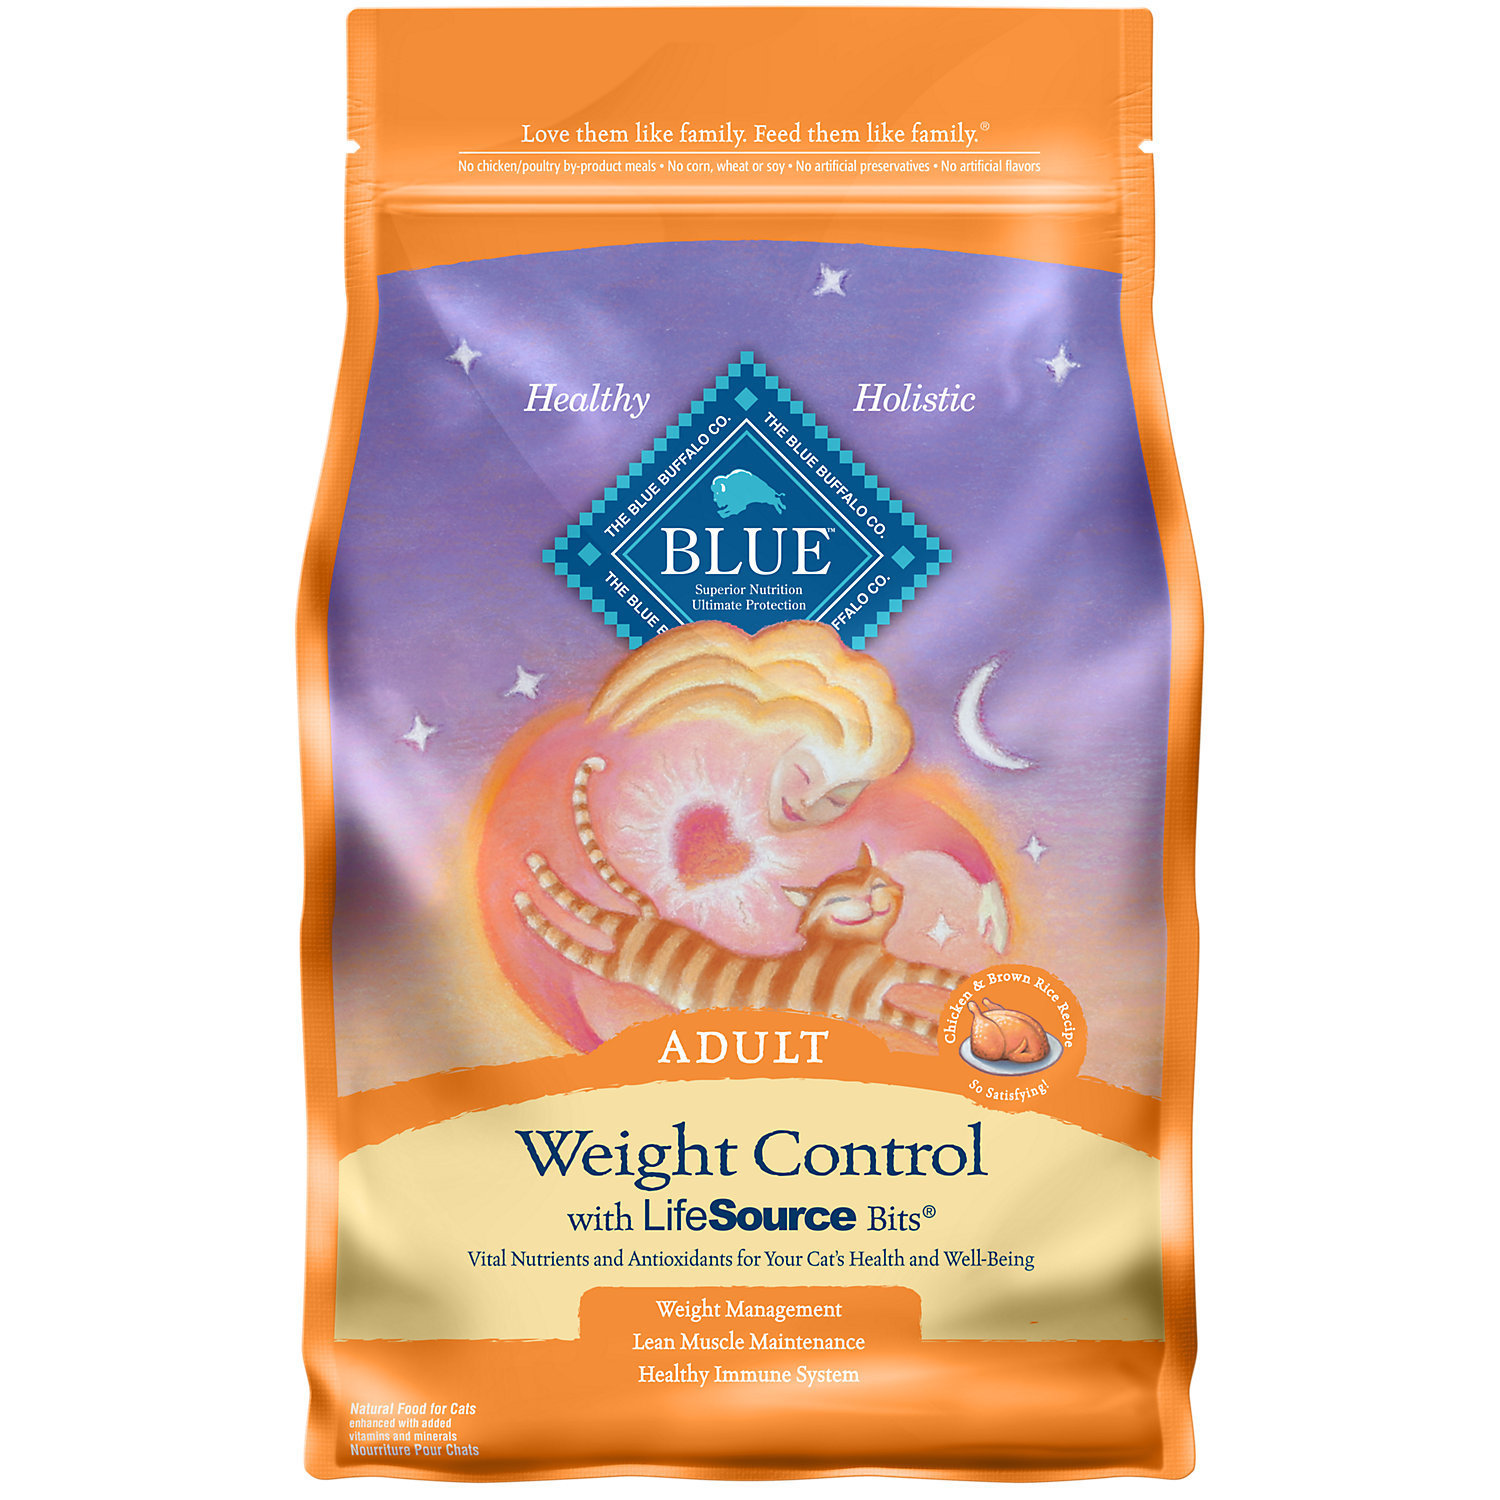 Blue Buffalo Weight Control Chicken & Brown Rice Adult Cat Food, 7 lbs. (2/19) (A.M1)